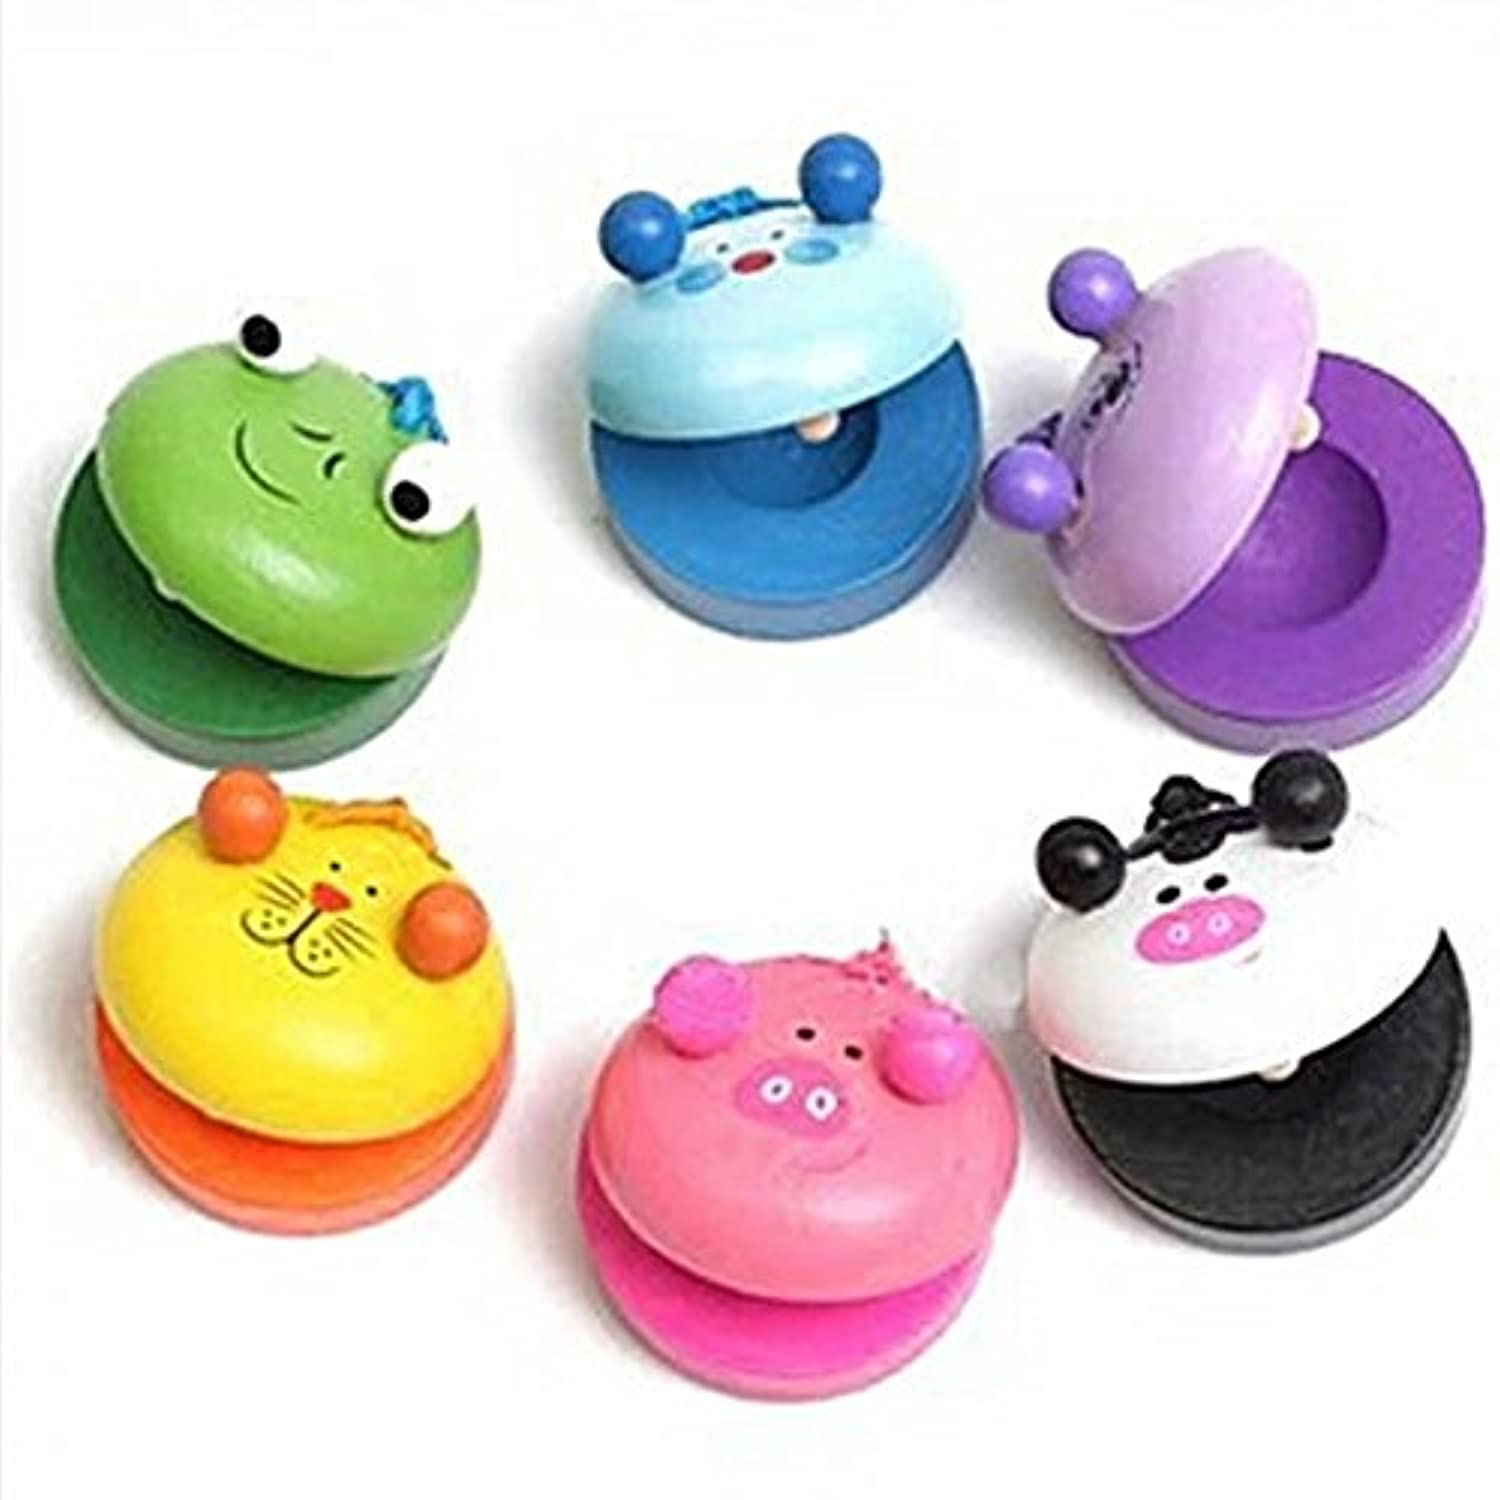 1pc Wooden Animals Castanets Kids Musical Instrument Play Toys Round Character Castanets Pocket Funny Educational Toy